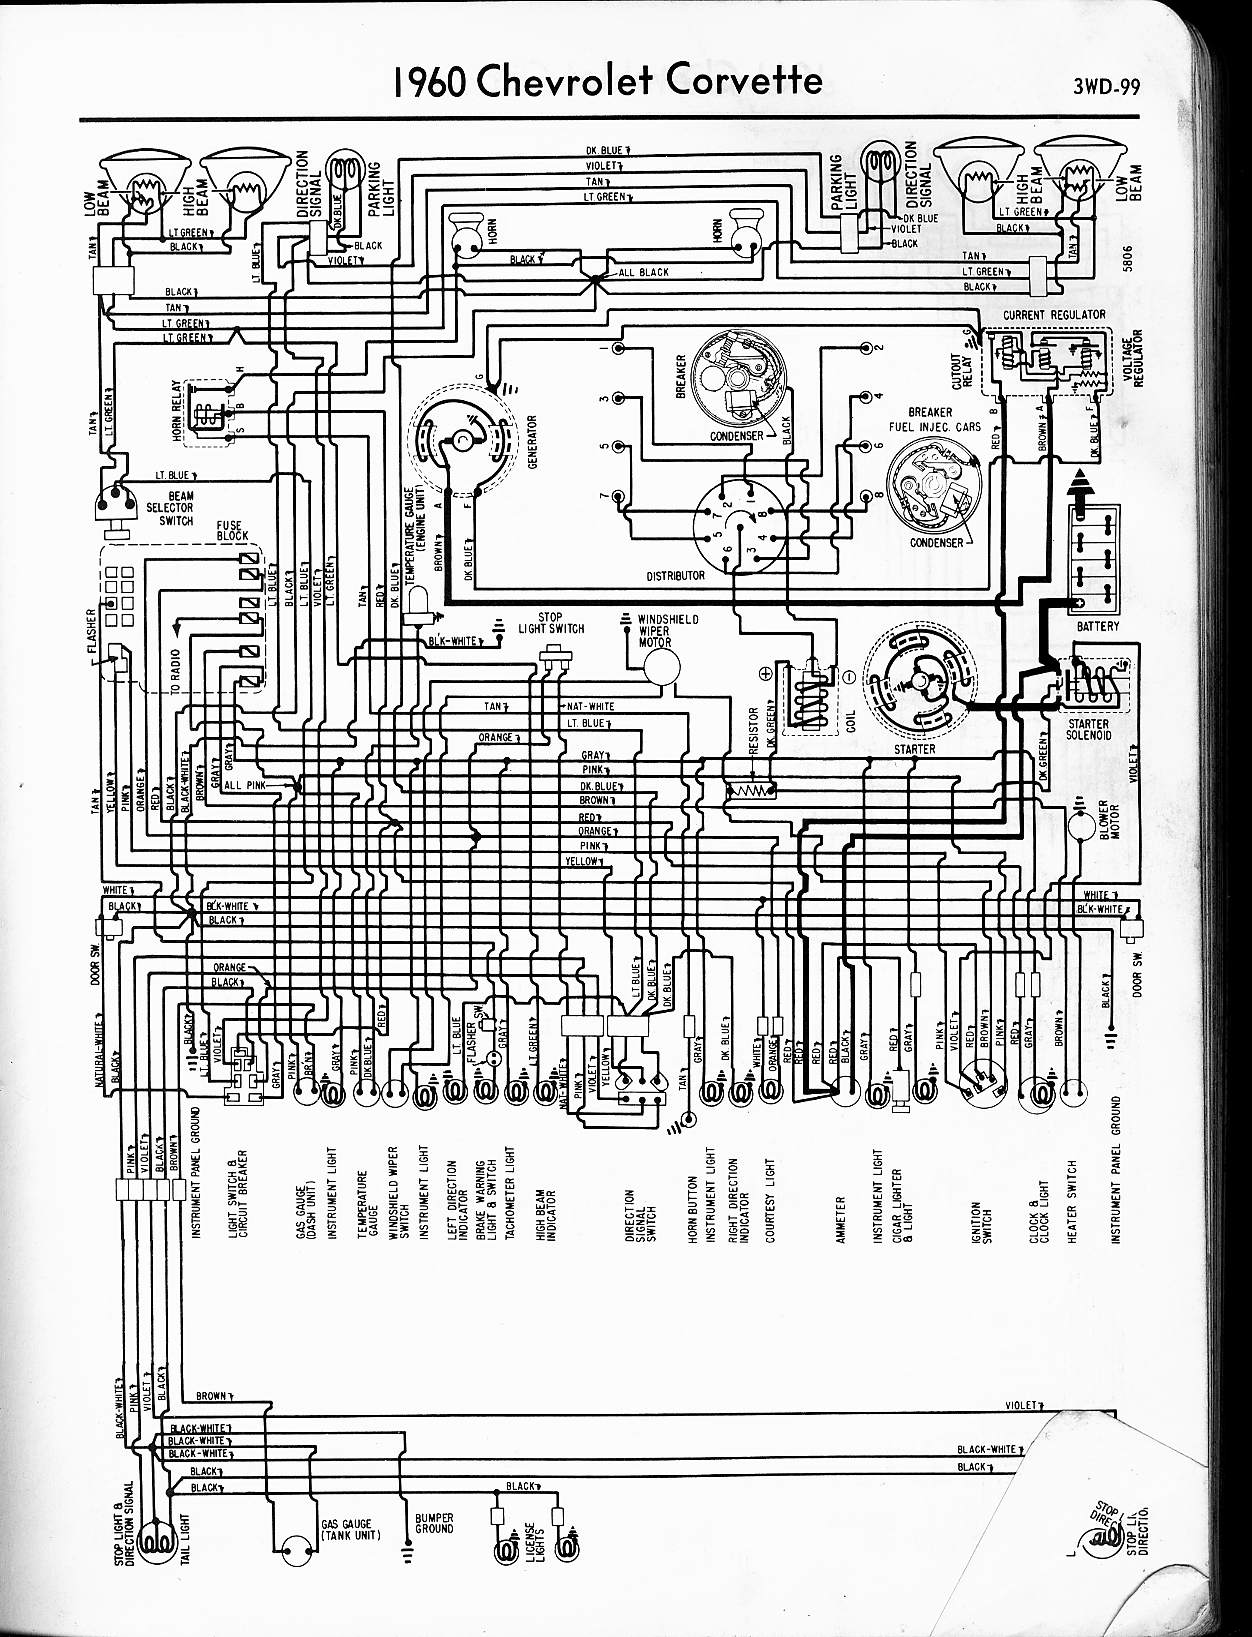 1961 corvair wiring diagram